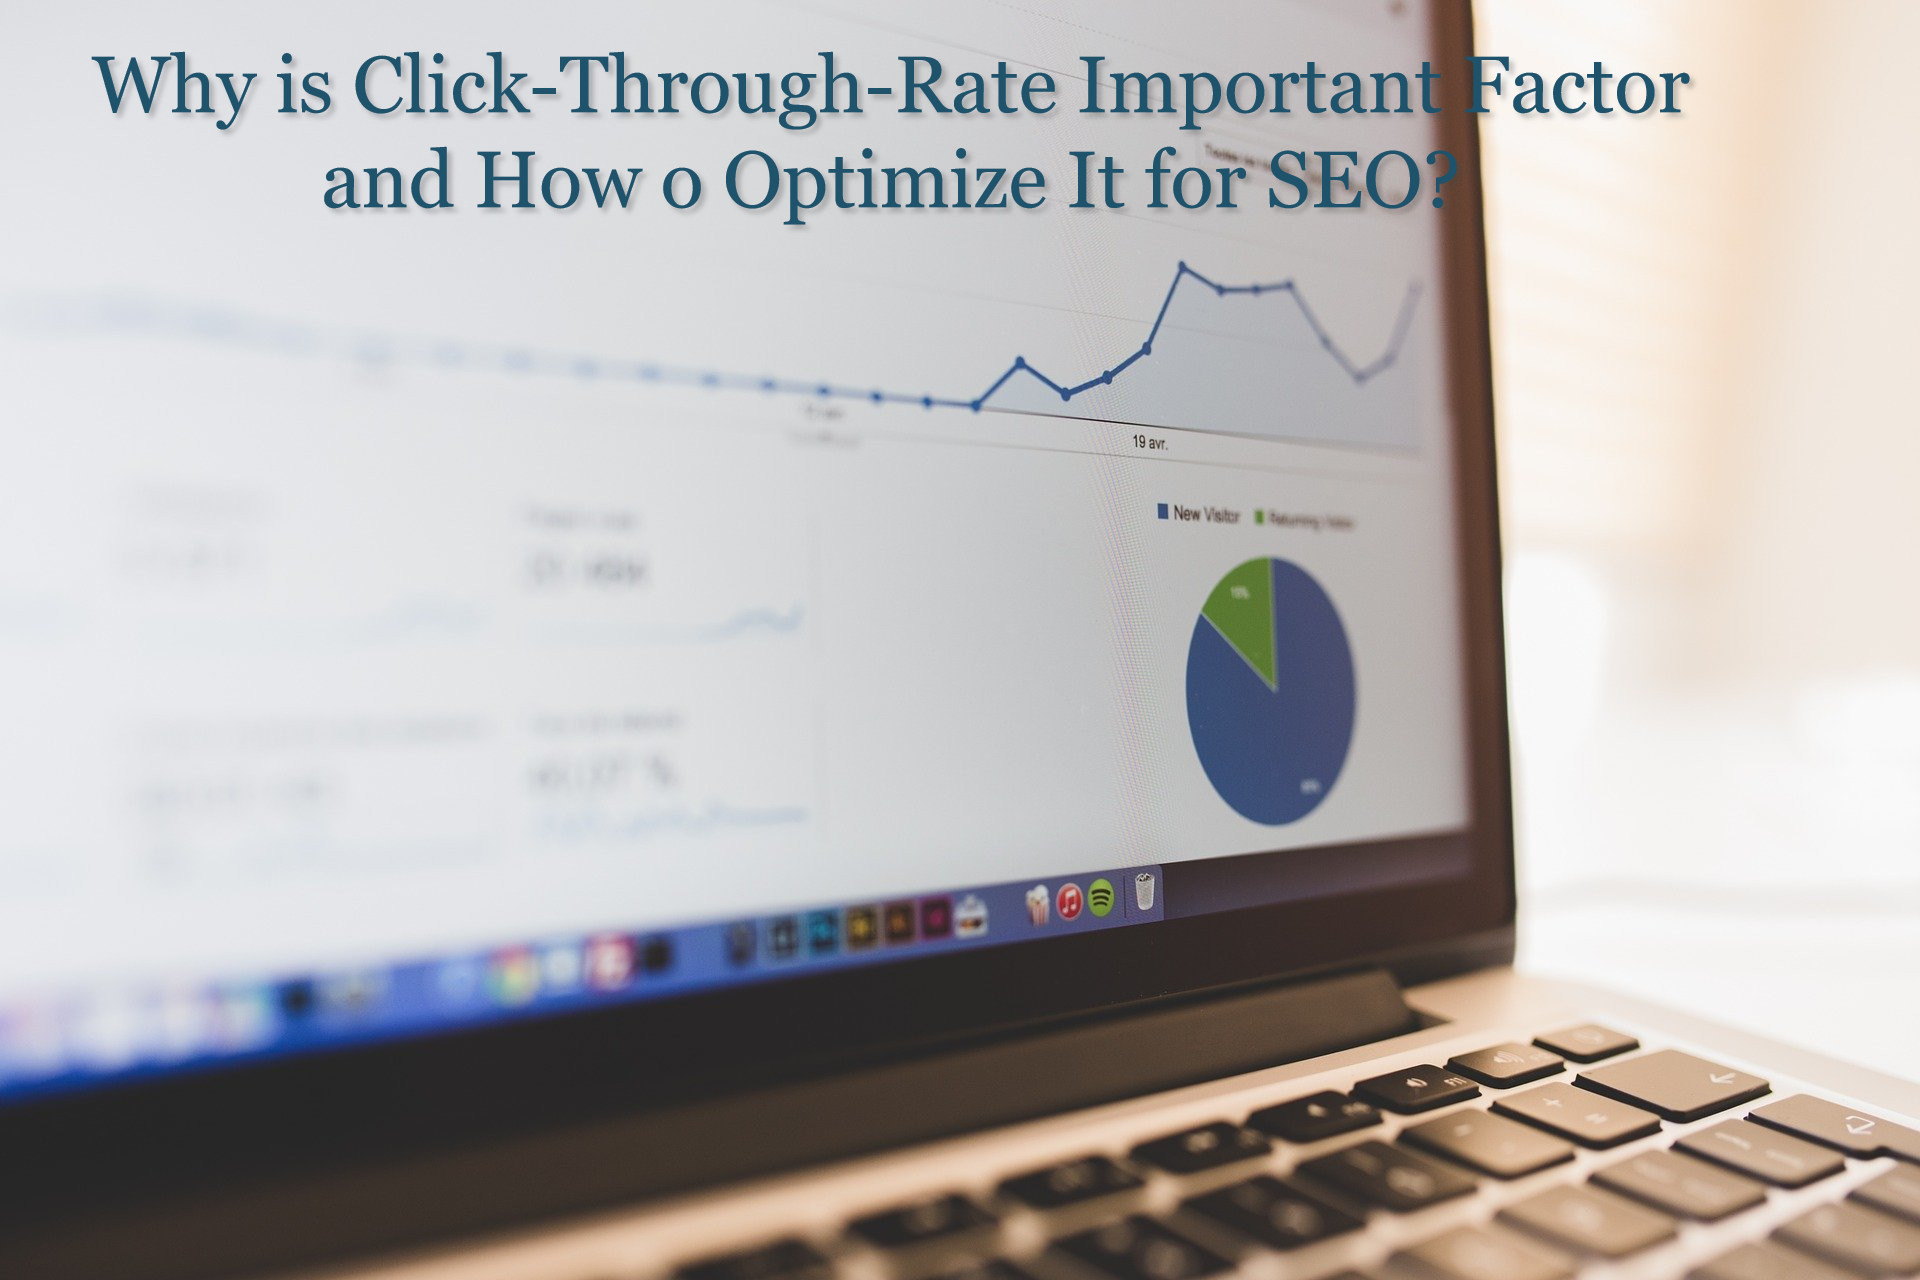 Why is Click-Through-Rate Important Factor and How o Optimize It for SEO?